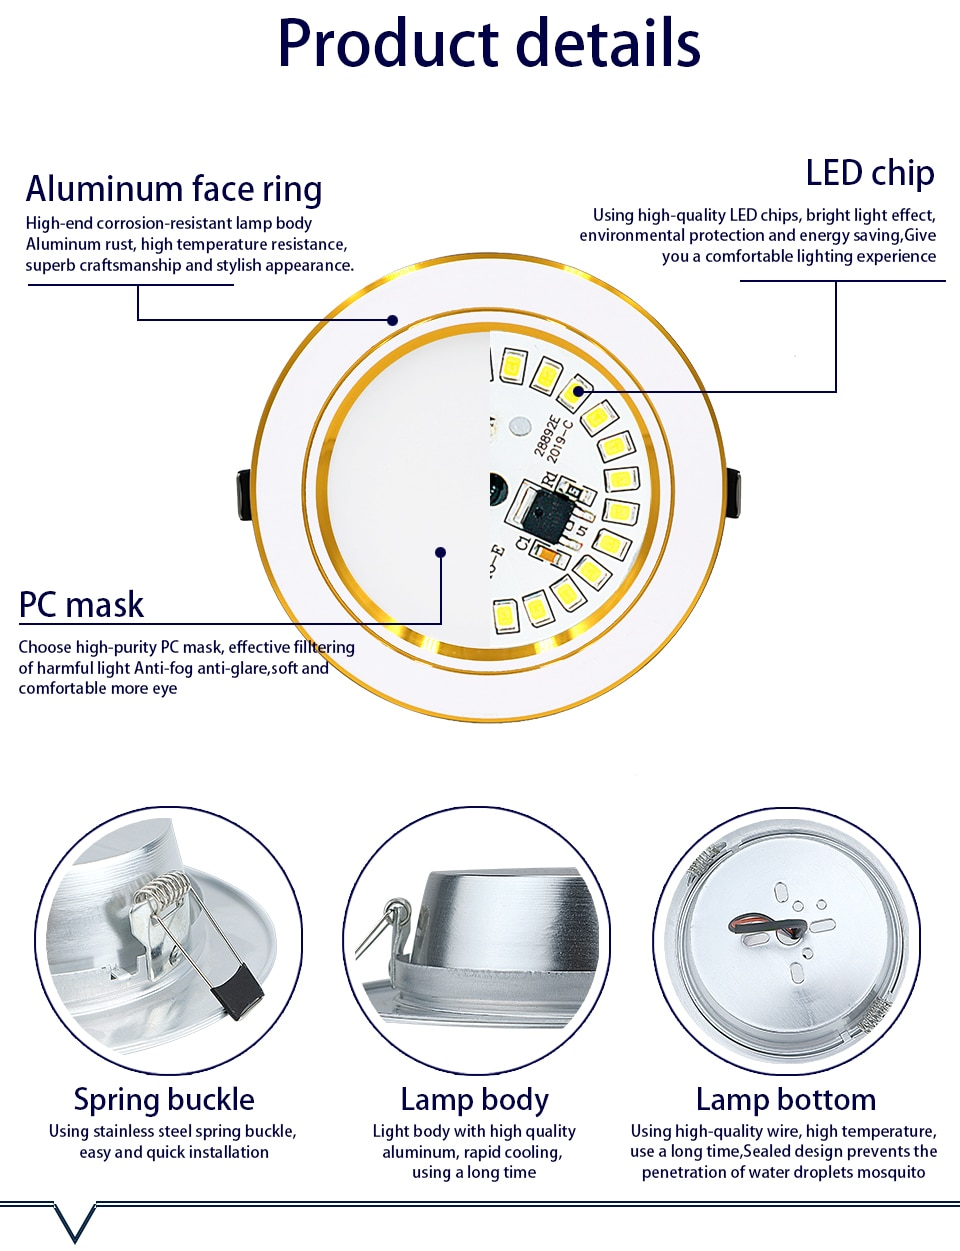 Hbd0b607cd78947a9a23b648ae394286eq - 10pcs/lot LED Downlight 5W 9W 12W 15W 18W Recessed Round LED Ceiling Lamp AC 220V-240V Indoor Lighting Warm White Cold White